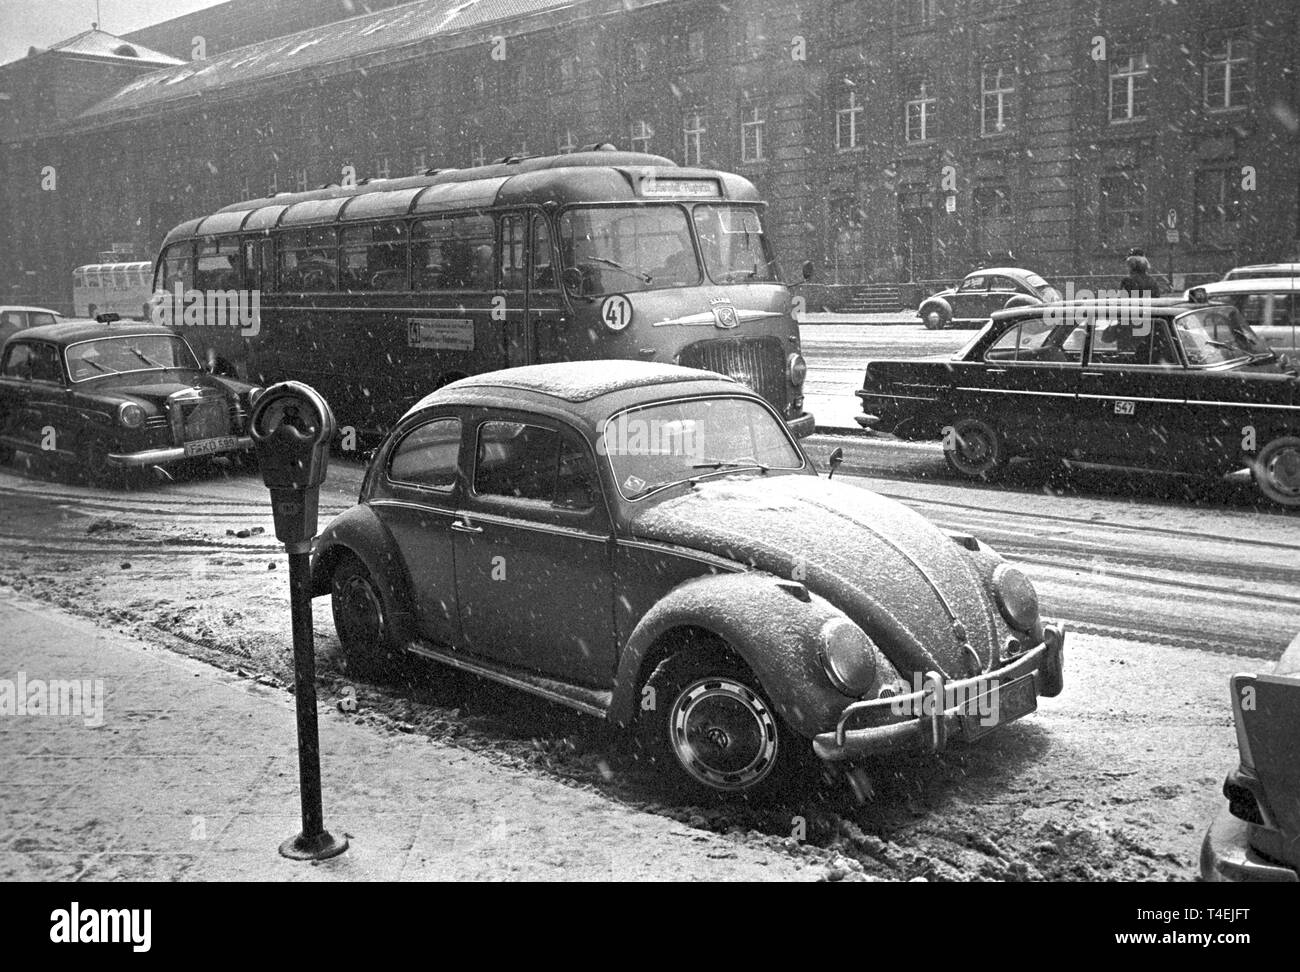 A VW-Käfer is parked in front of a parking meter in the snow (archive picture from the 28th of January in 1963). | usage worldwide - Stock Image